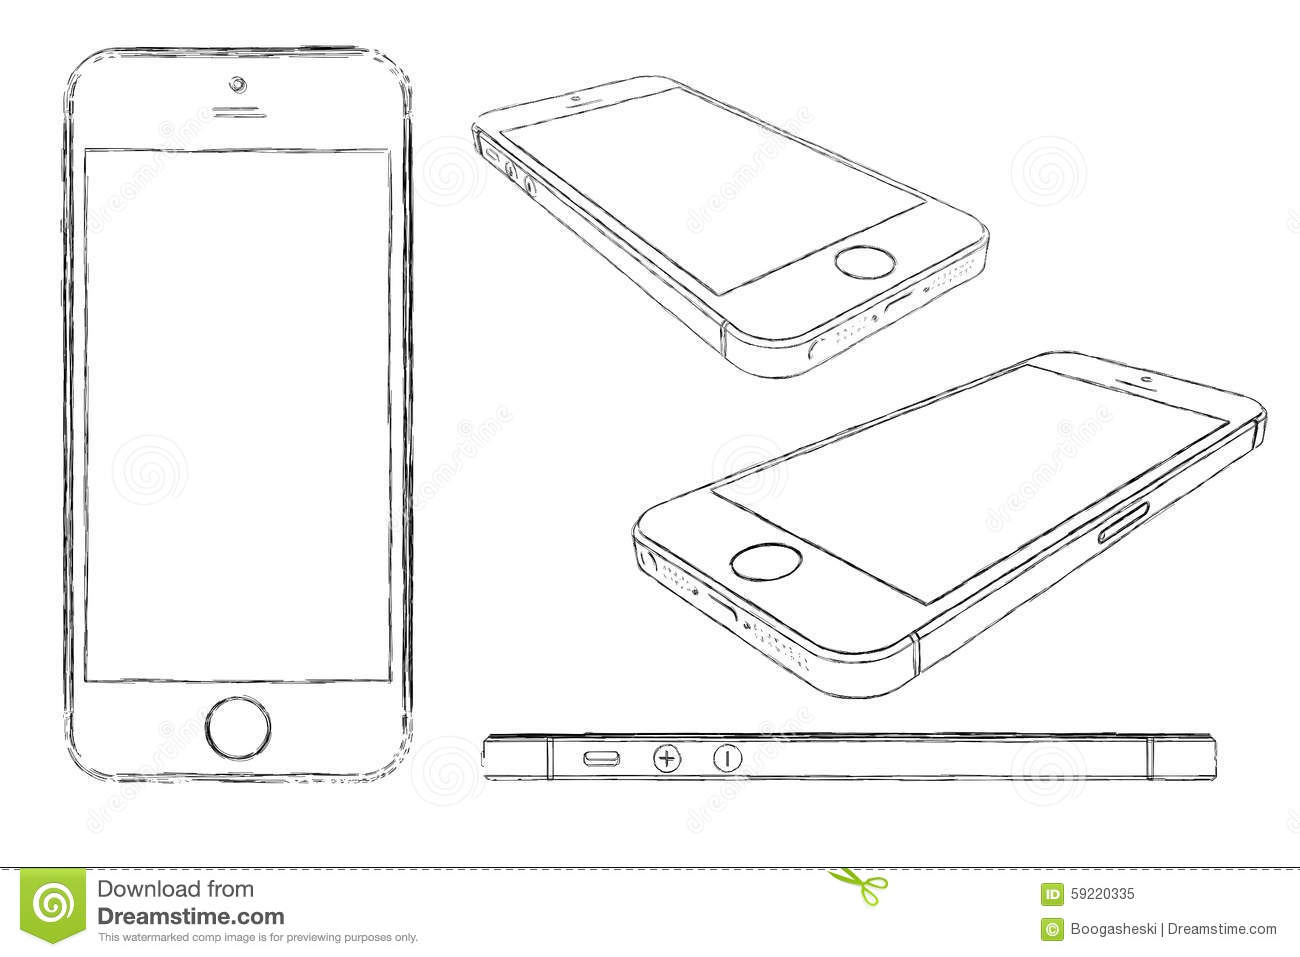 Apples Drittes Jahresquartal In Diagrammform 162673 likewise Image  C3 A9ditorial Iphone S Esquiss C3 A9 Le Dessin Image59220335 furthermore Kranich together with SEBP42480130 likewise Reading Out Hdq Equipped Battery Fuel Gauges With A Serial Port. on iphone 5 diagram